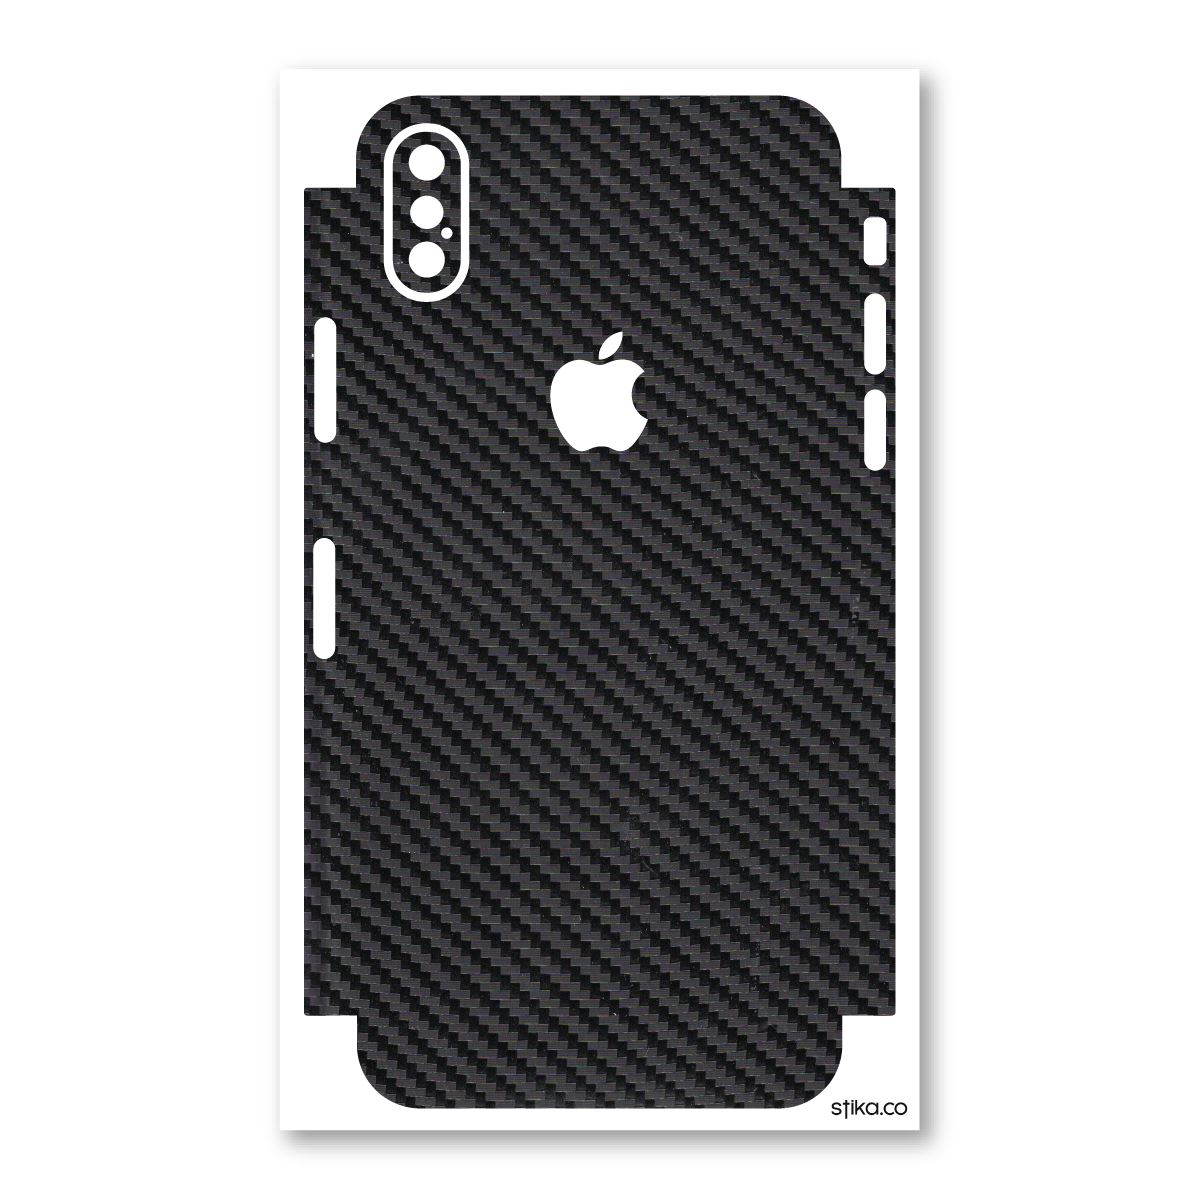 best sneakers a3cef 81aeb Details about Textured Carbon Vinyl Phone Protection wrap skin sticker for  Apple iPhone X, 10